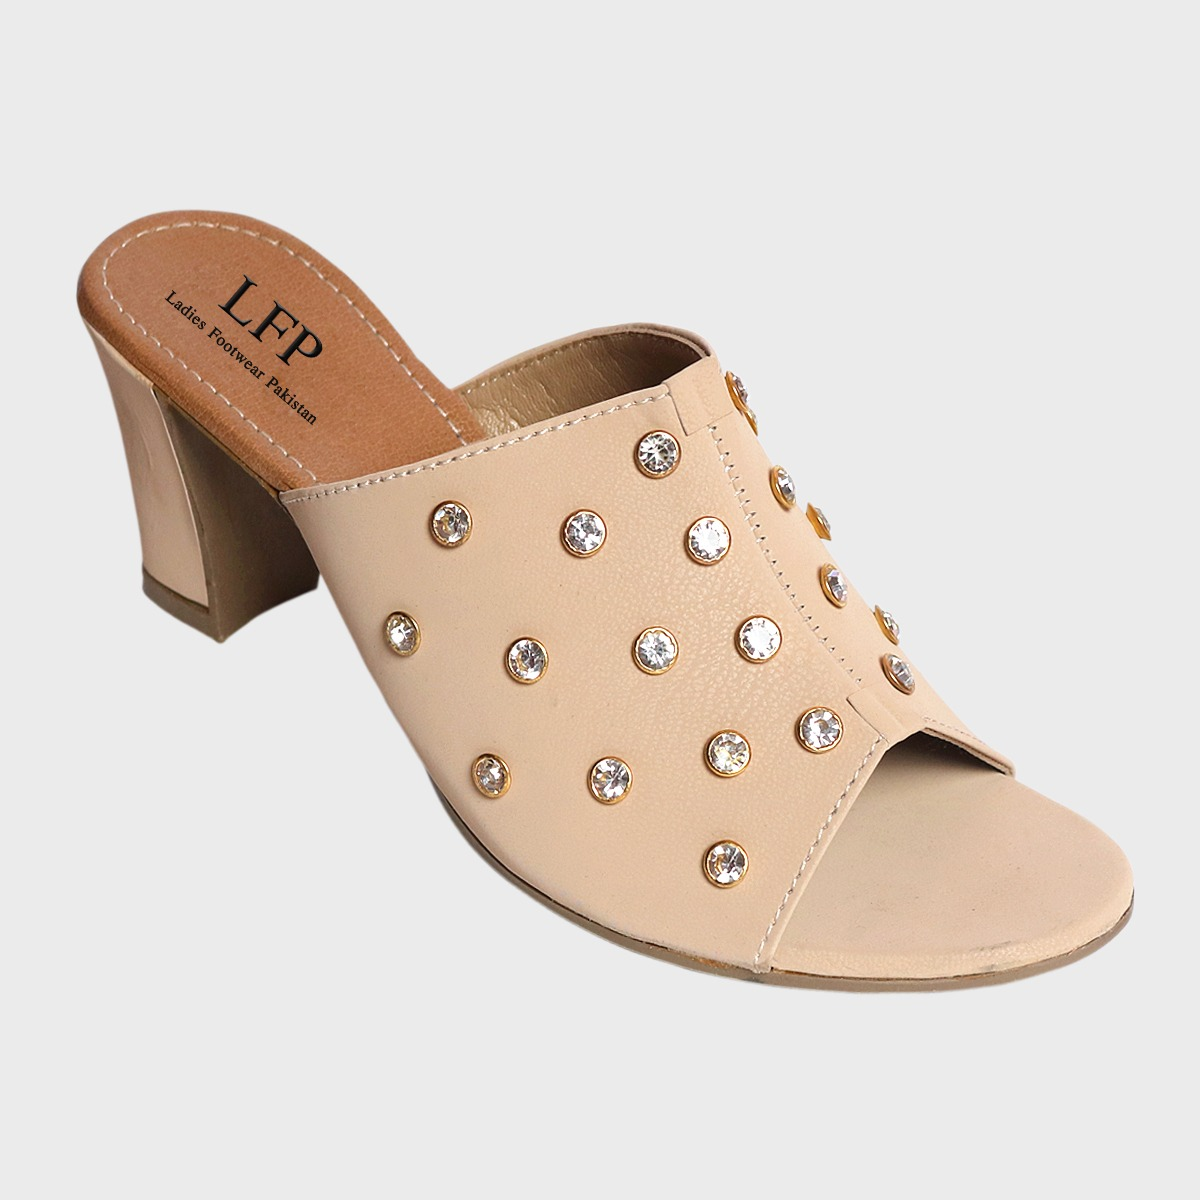 New Stylish Grey Color Flat Sandals for Women